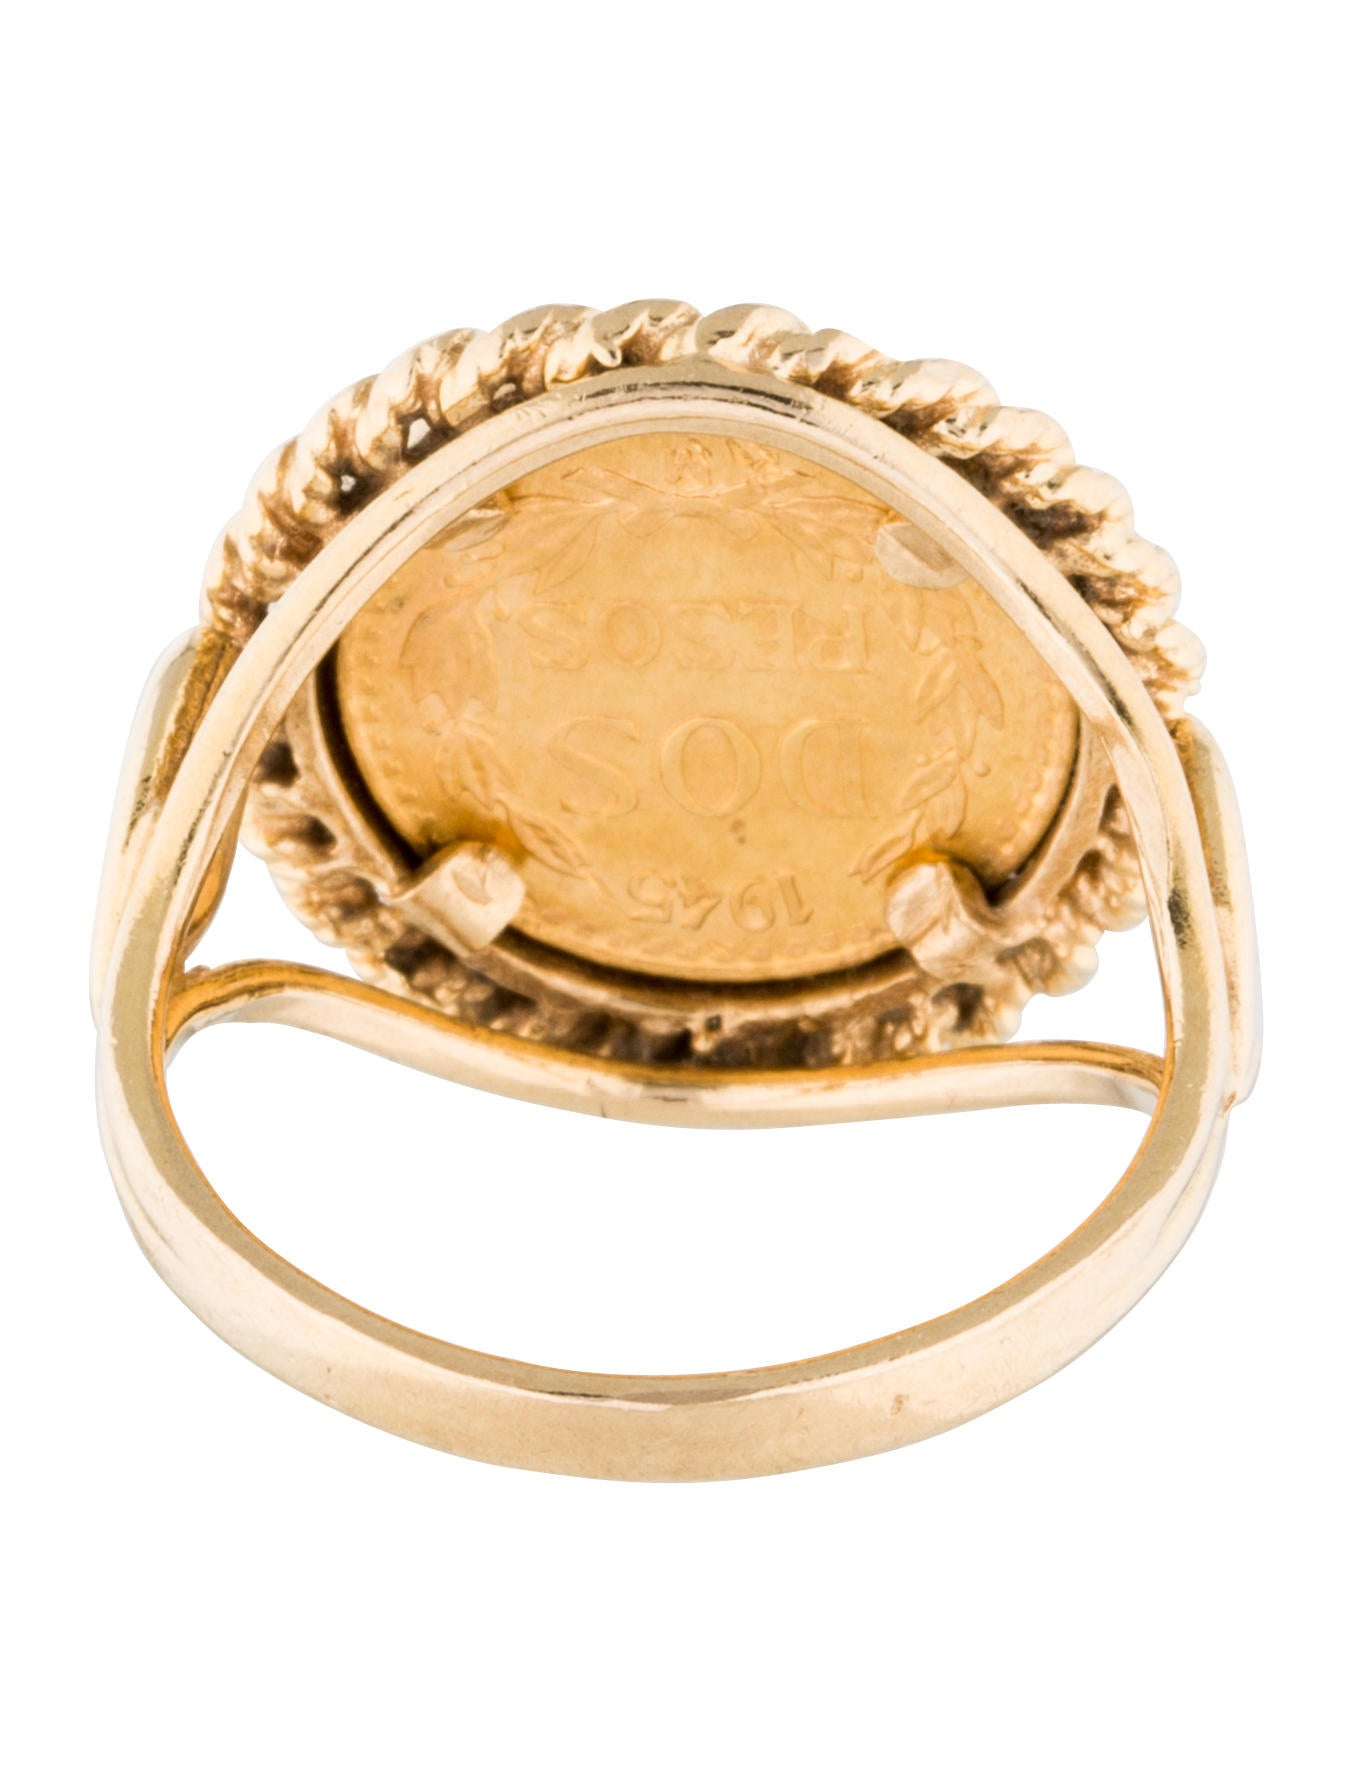 14k mexican peso coin ring rings rring31849 the realreal